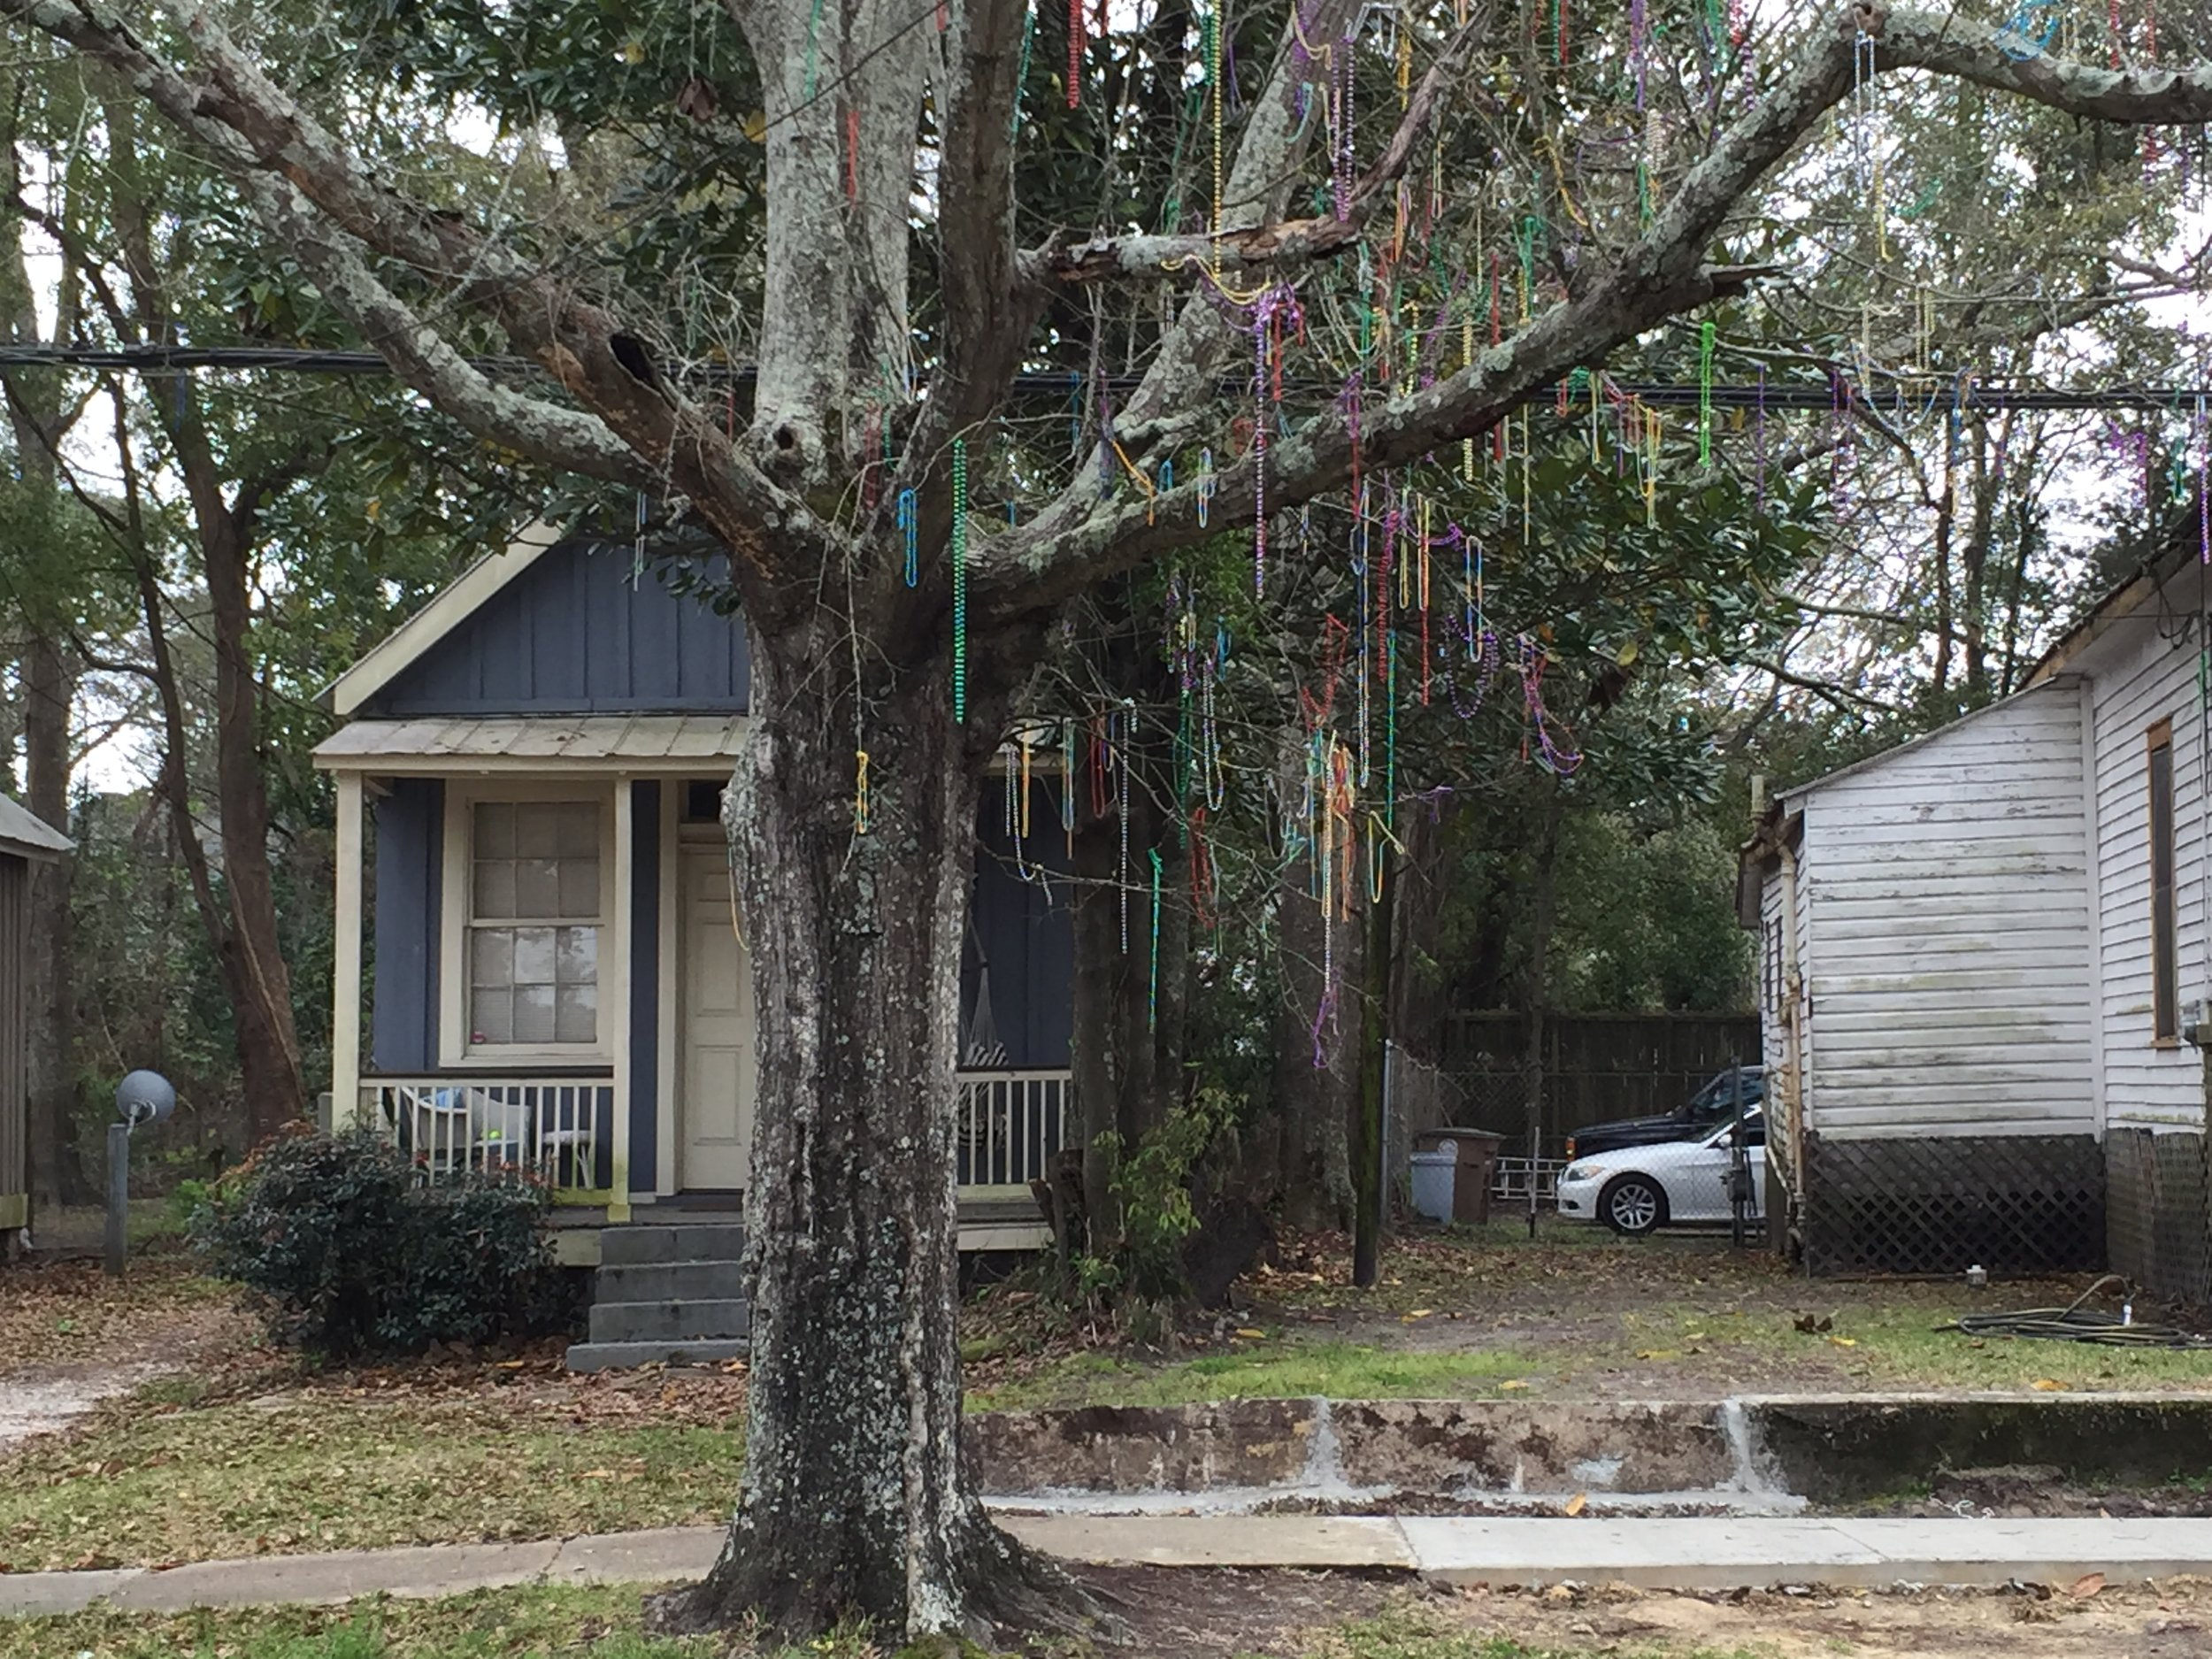 A tree on the same street, showing signs of the recently-ended Mardi Gras.